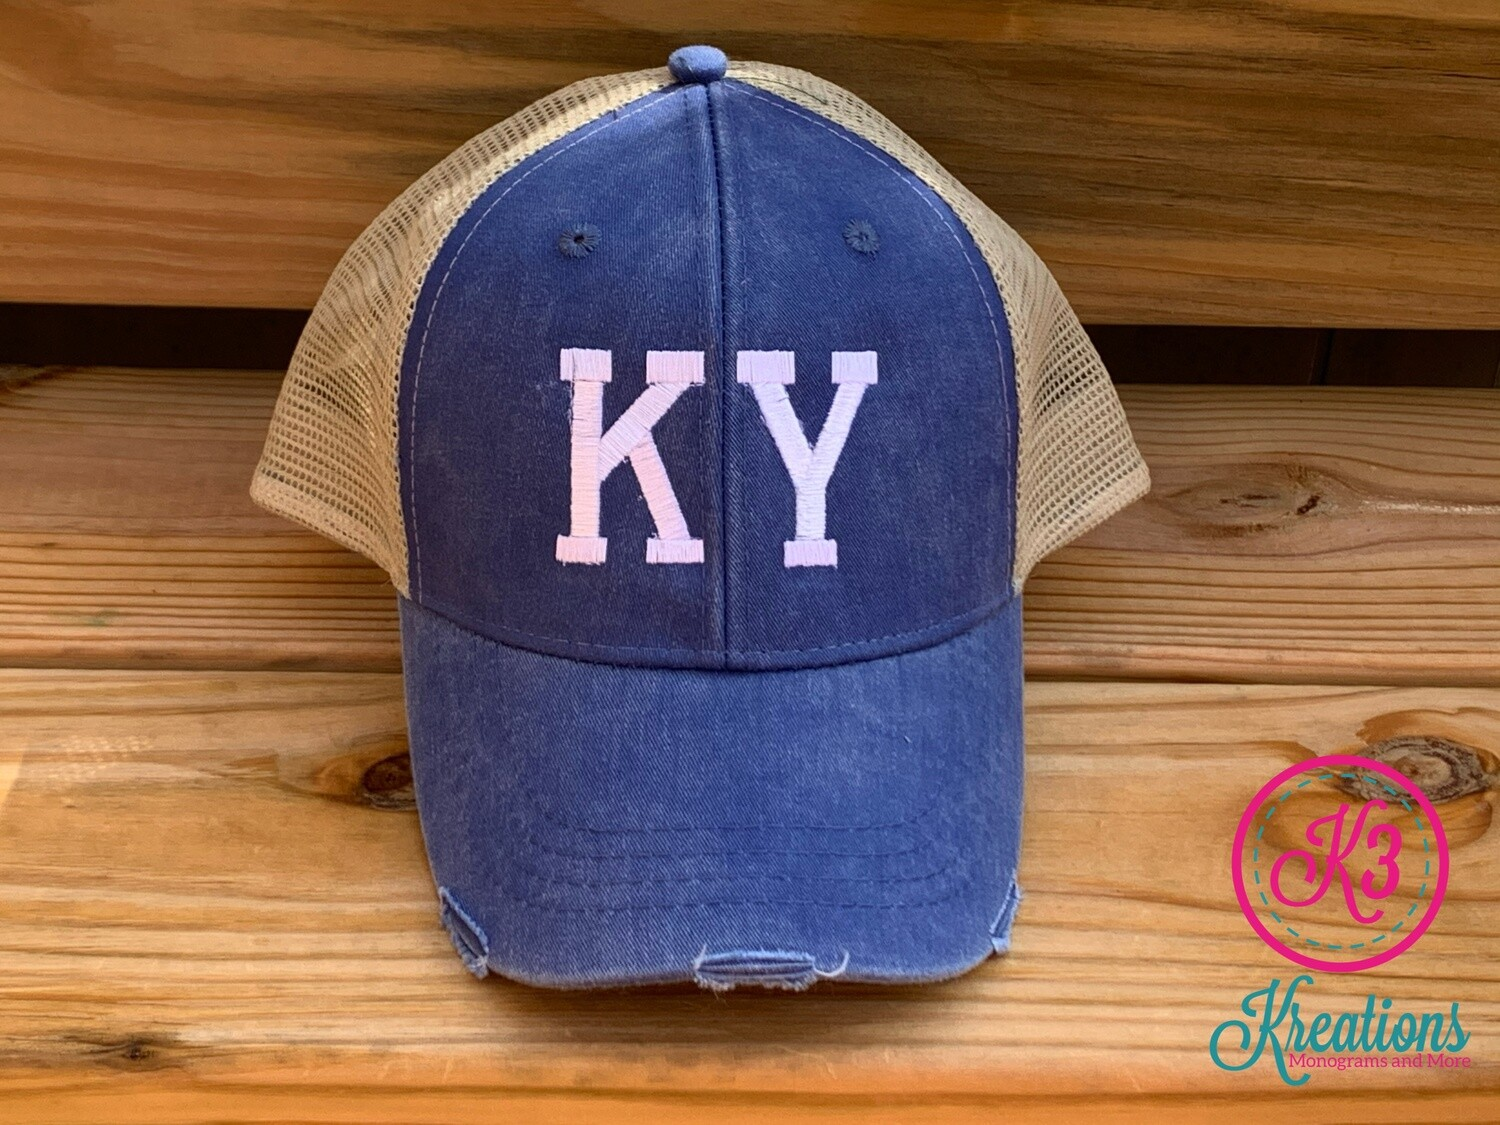 KY Distressed Trucker Hat